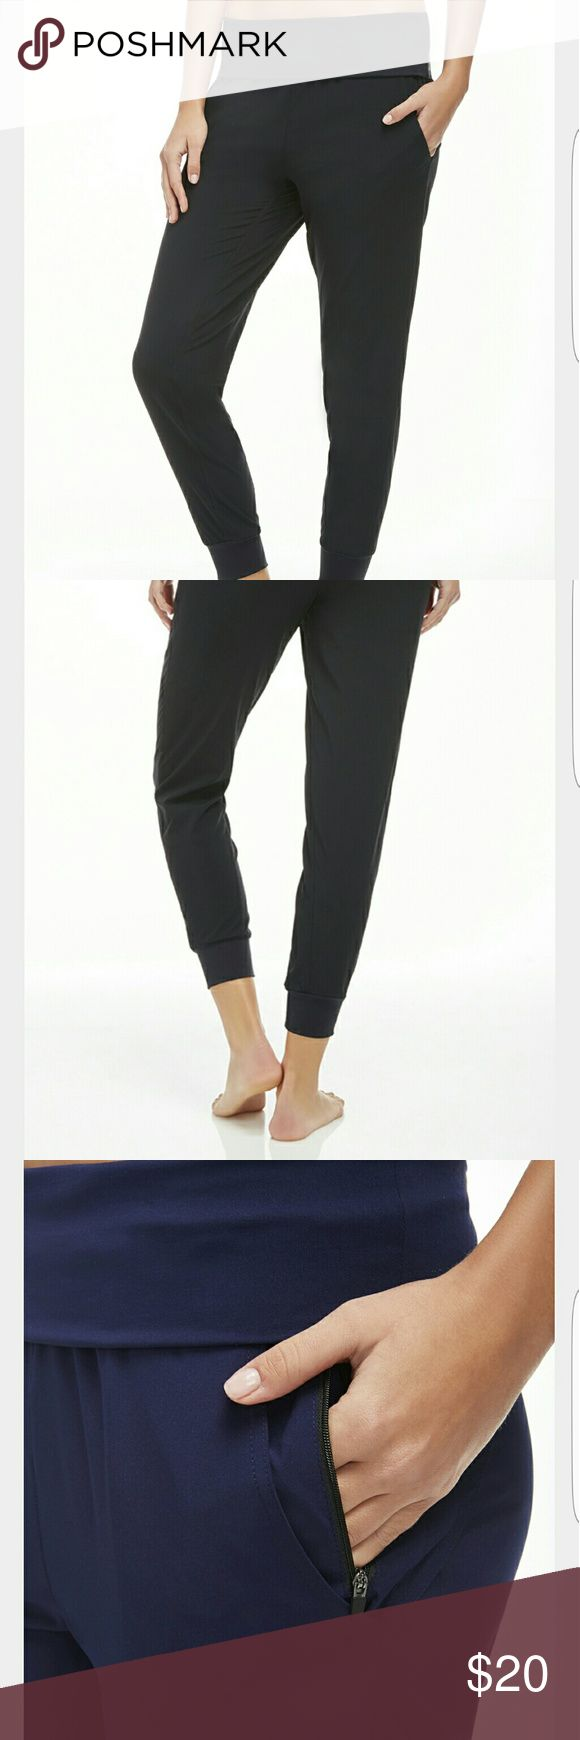 Fabletics Labaree Jogger When you bundle 3 items or more, I'll give you a discount just send an offer and we'll take it from there. If you guys could leave a nice review in the comment area once shipment is receive, that would be highly appreciated. In case of any inquiries feel free to reach out to me at tmarcos47@yahoo.com.  Thank you  Shipping dates Mondays & Thursdays Fabletics Pants Track Pants & Joggers